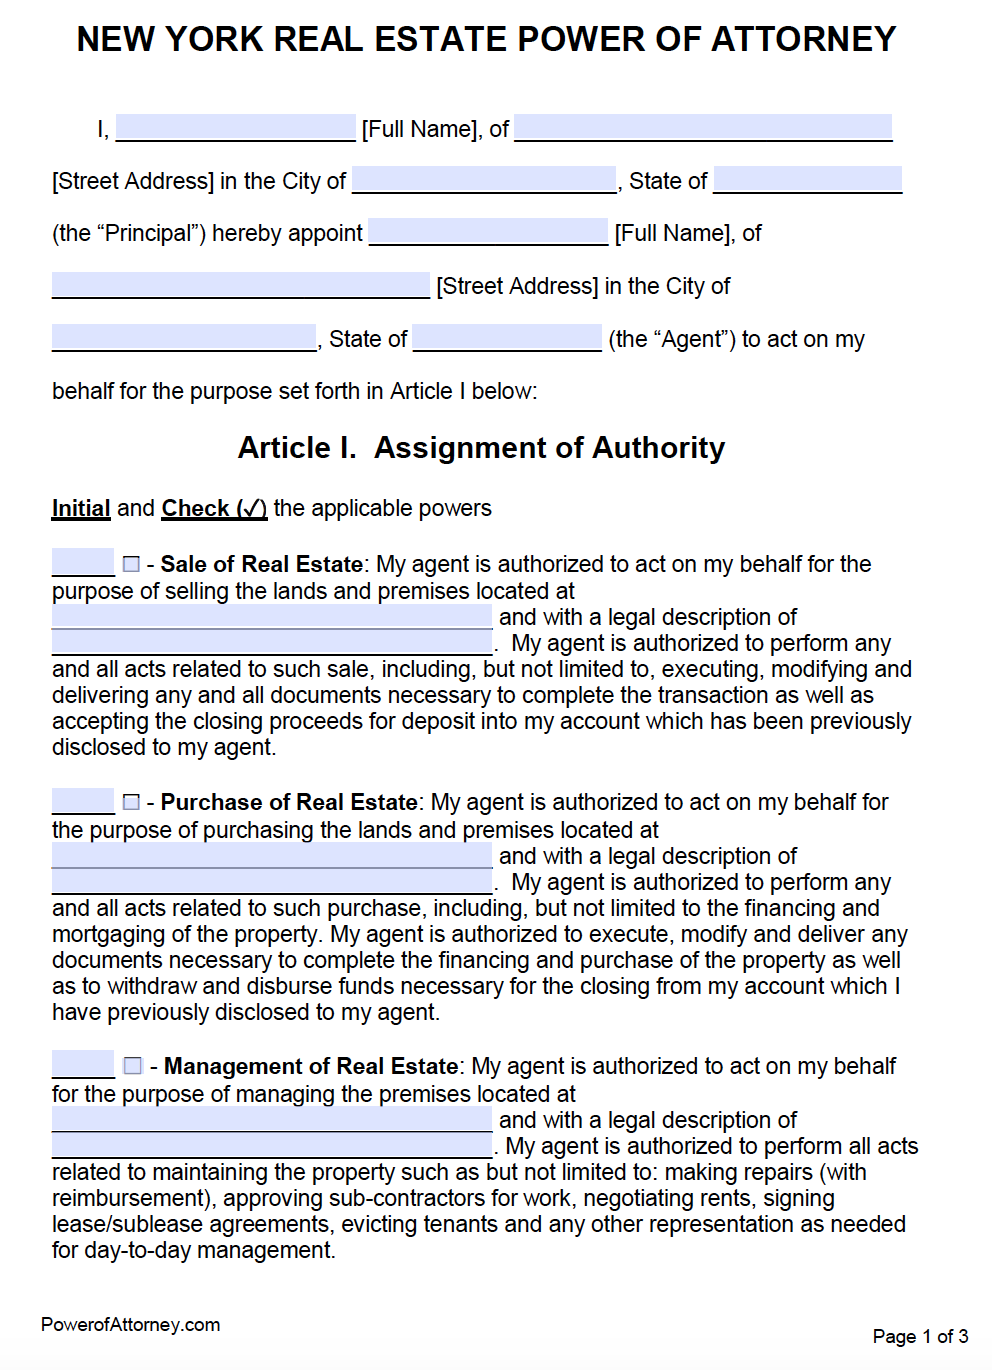 power of attorney form real estate  Free Real Estate Power of Attorney New York Form – PDF – Word